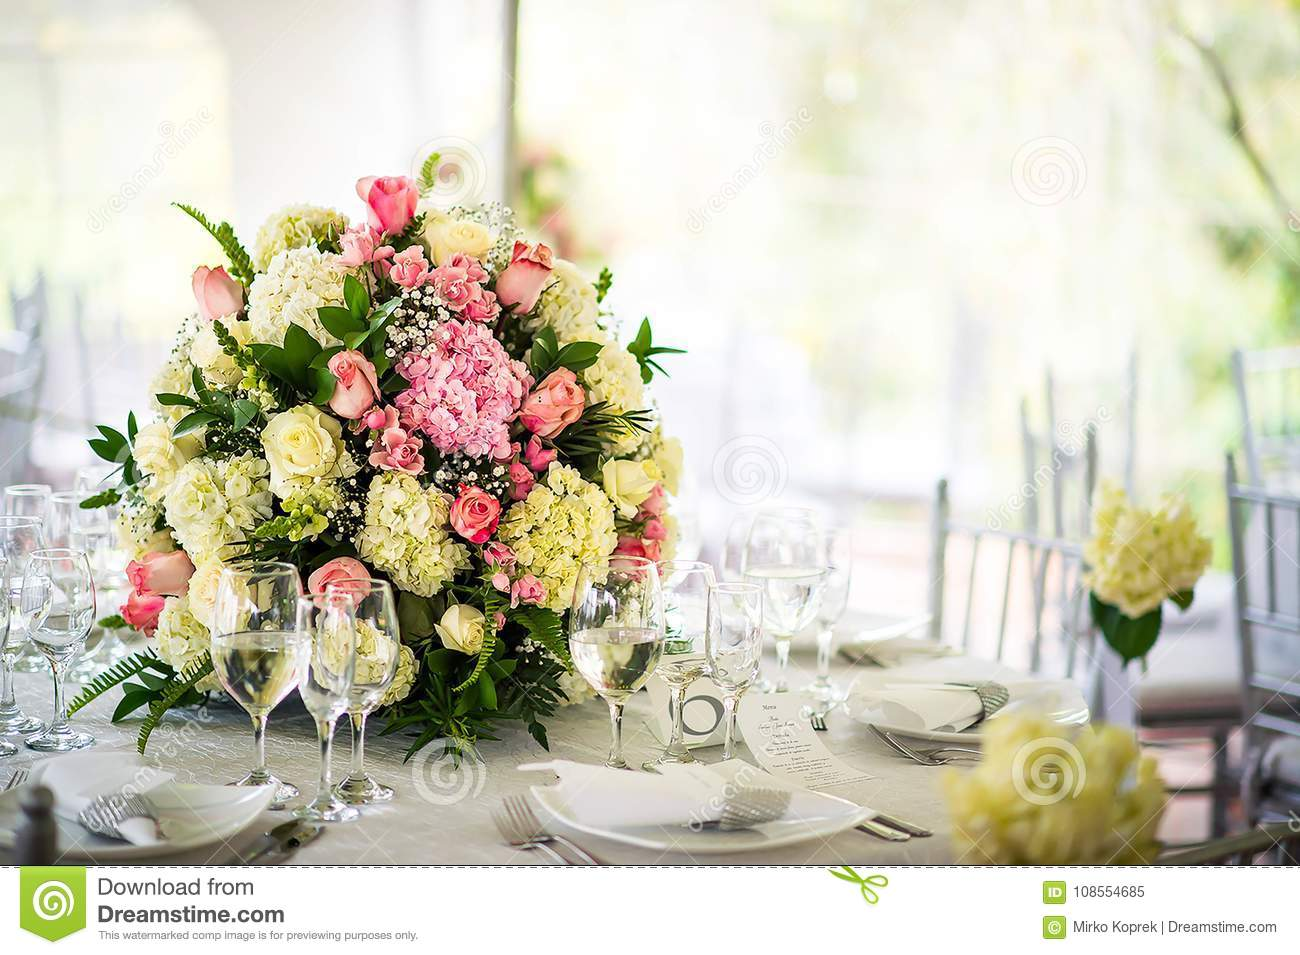 Beautiful Wedding Decoration On The Table Floral Arrangements And